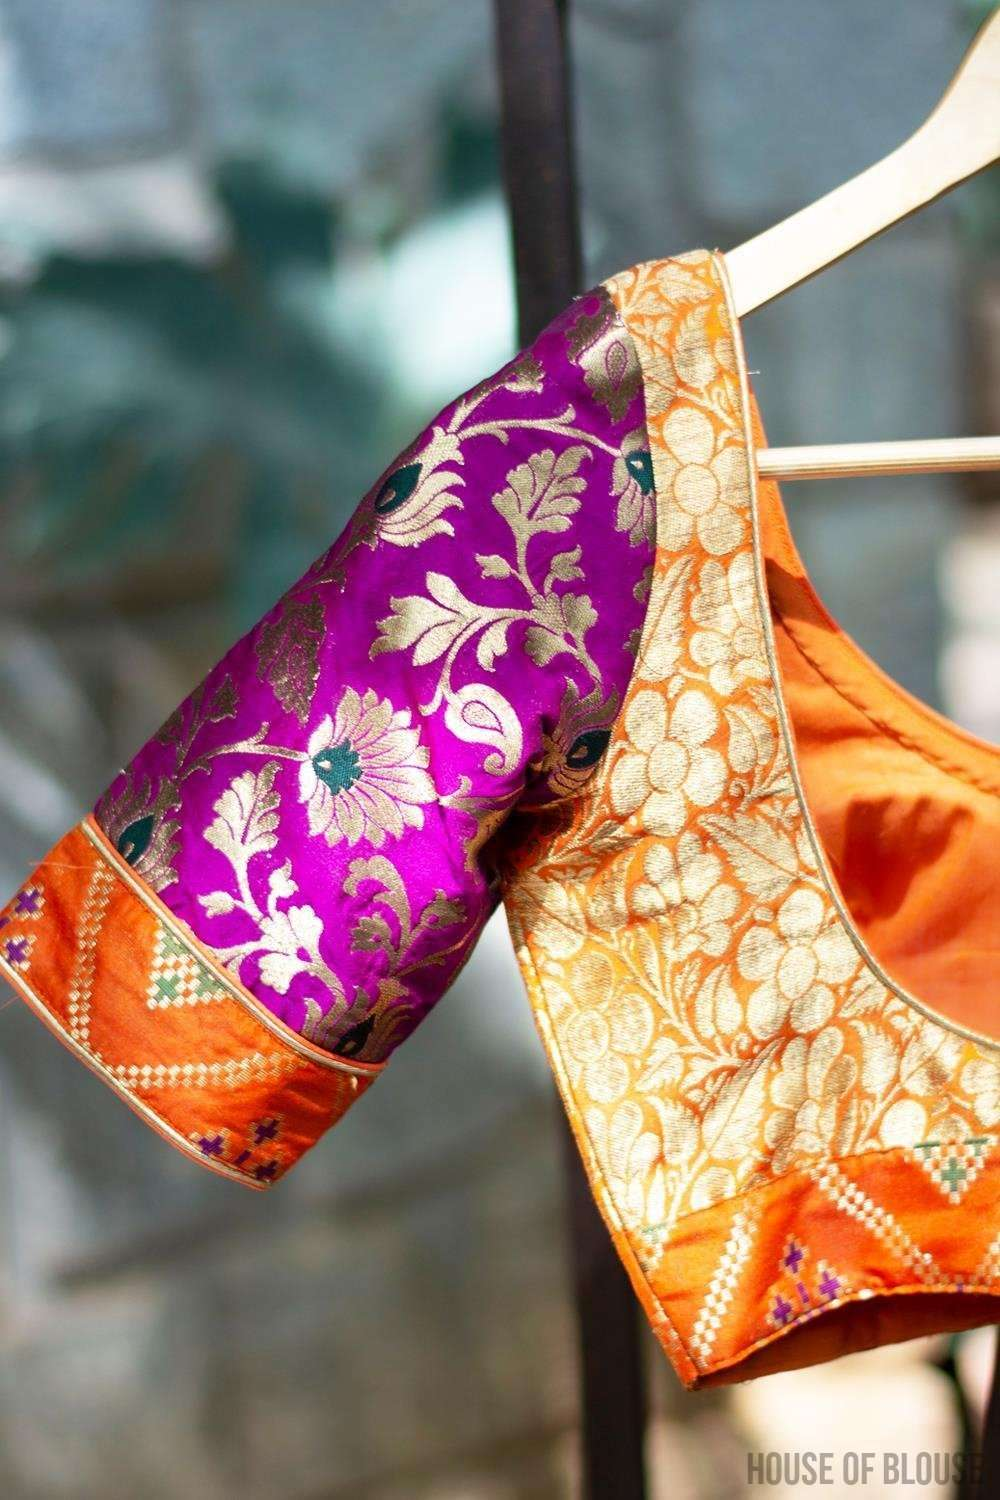 Patchwork blouse in yellow and orange brocade with purple brocade sleeves - House of Blouse